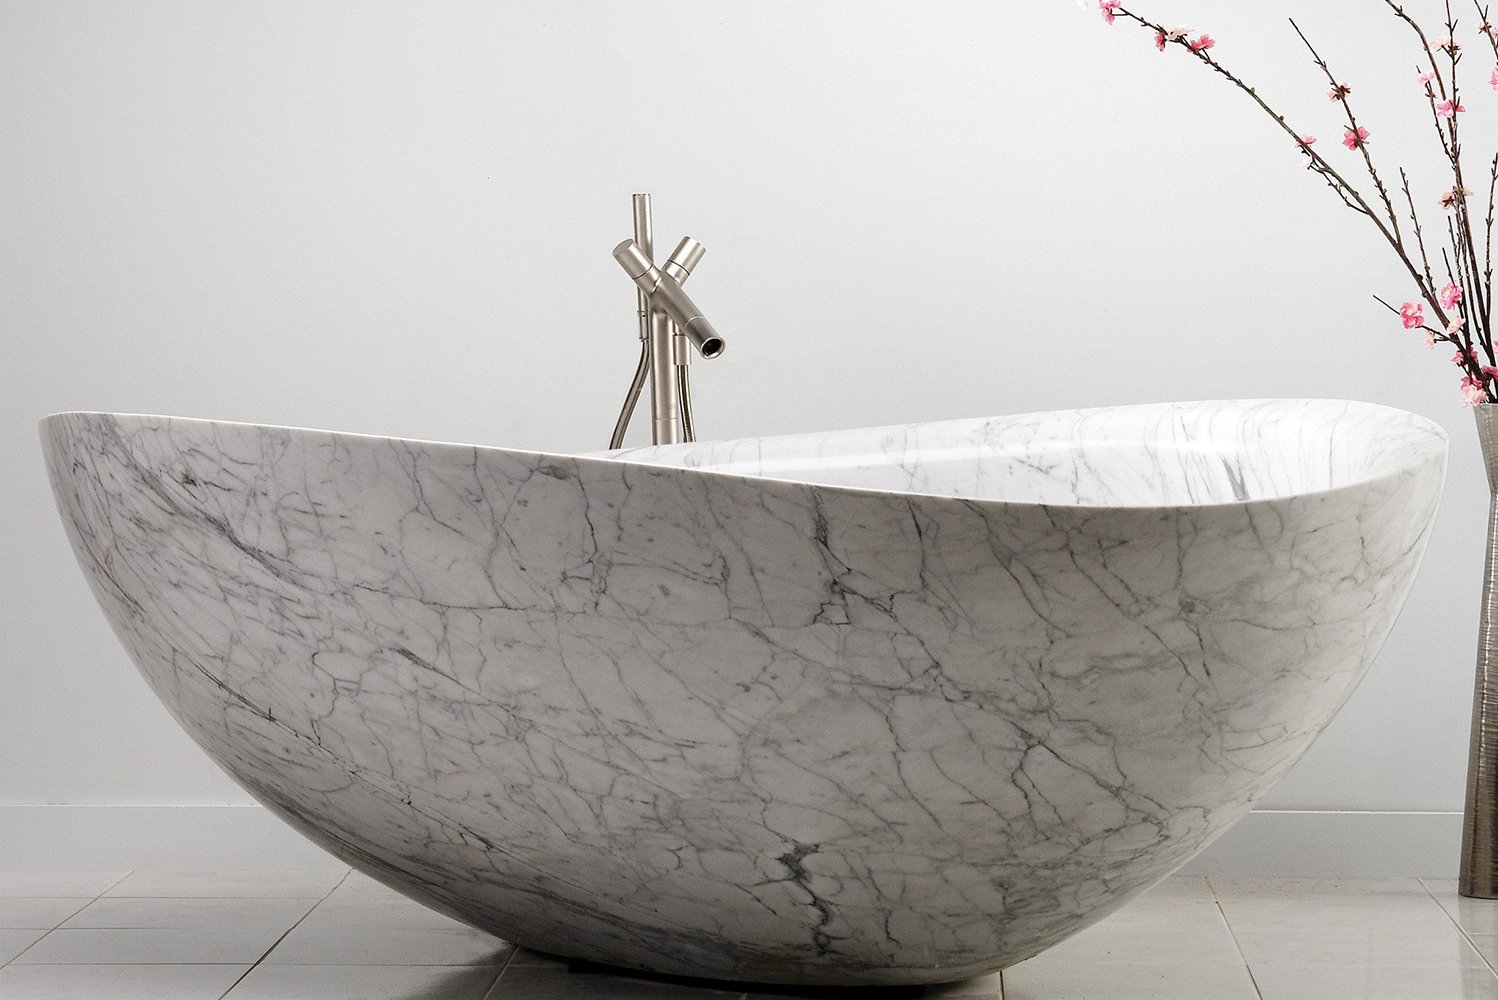 With its natural veining, the Papillon bathtub evokes elegance and organic simplicity.